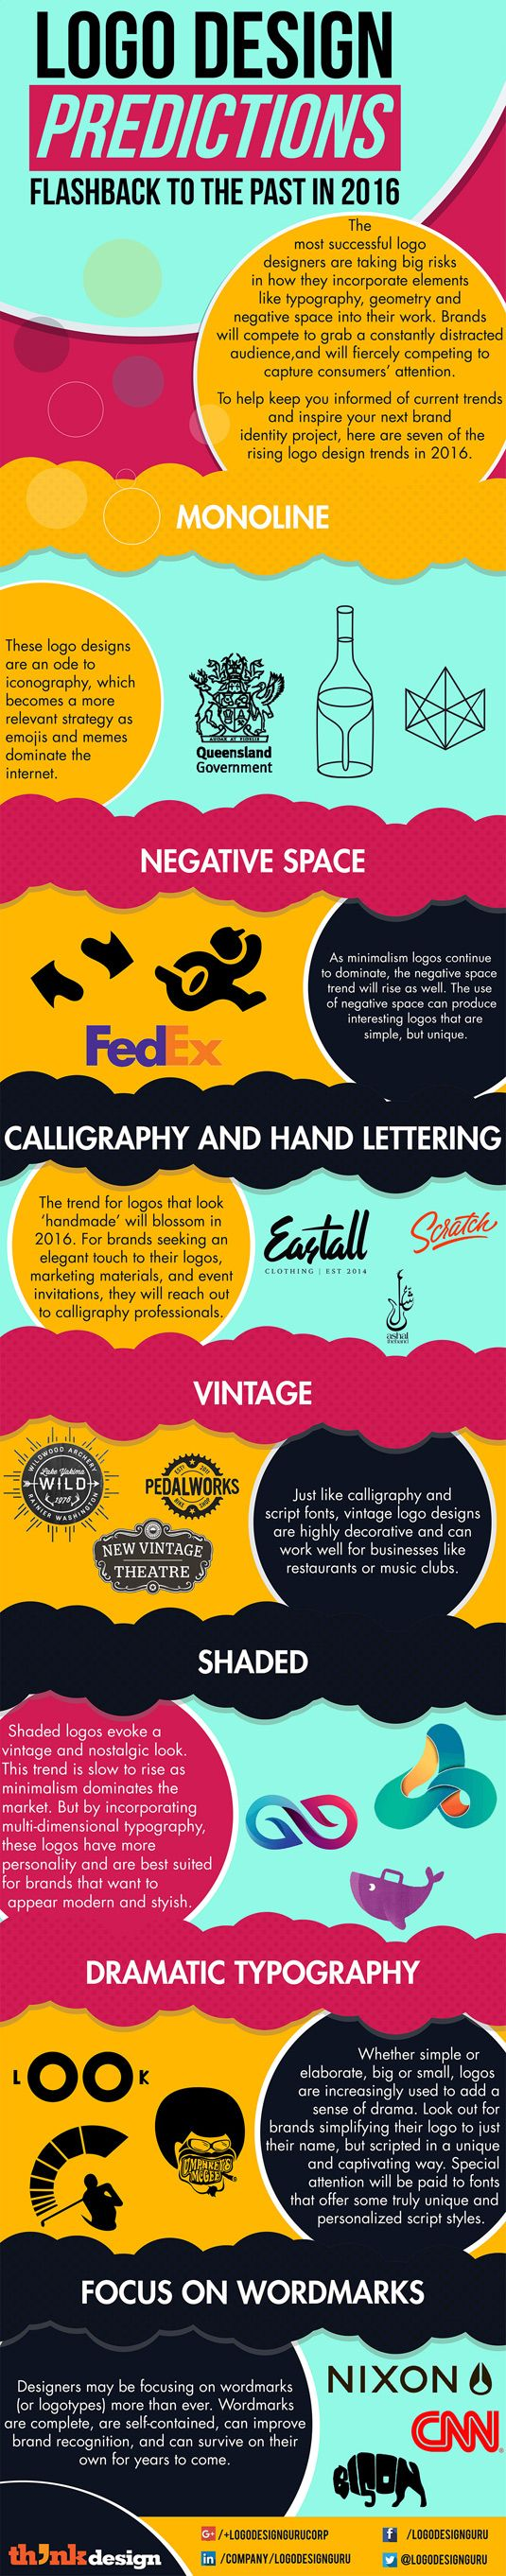 [INFOGRAPHIC] 7 rising logo design trends for 2016: Monoline; Negatice Space; Vintage; Shaded; Type; Wordmarks; Details>